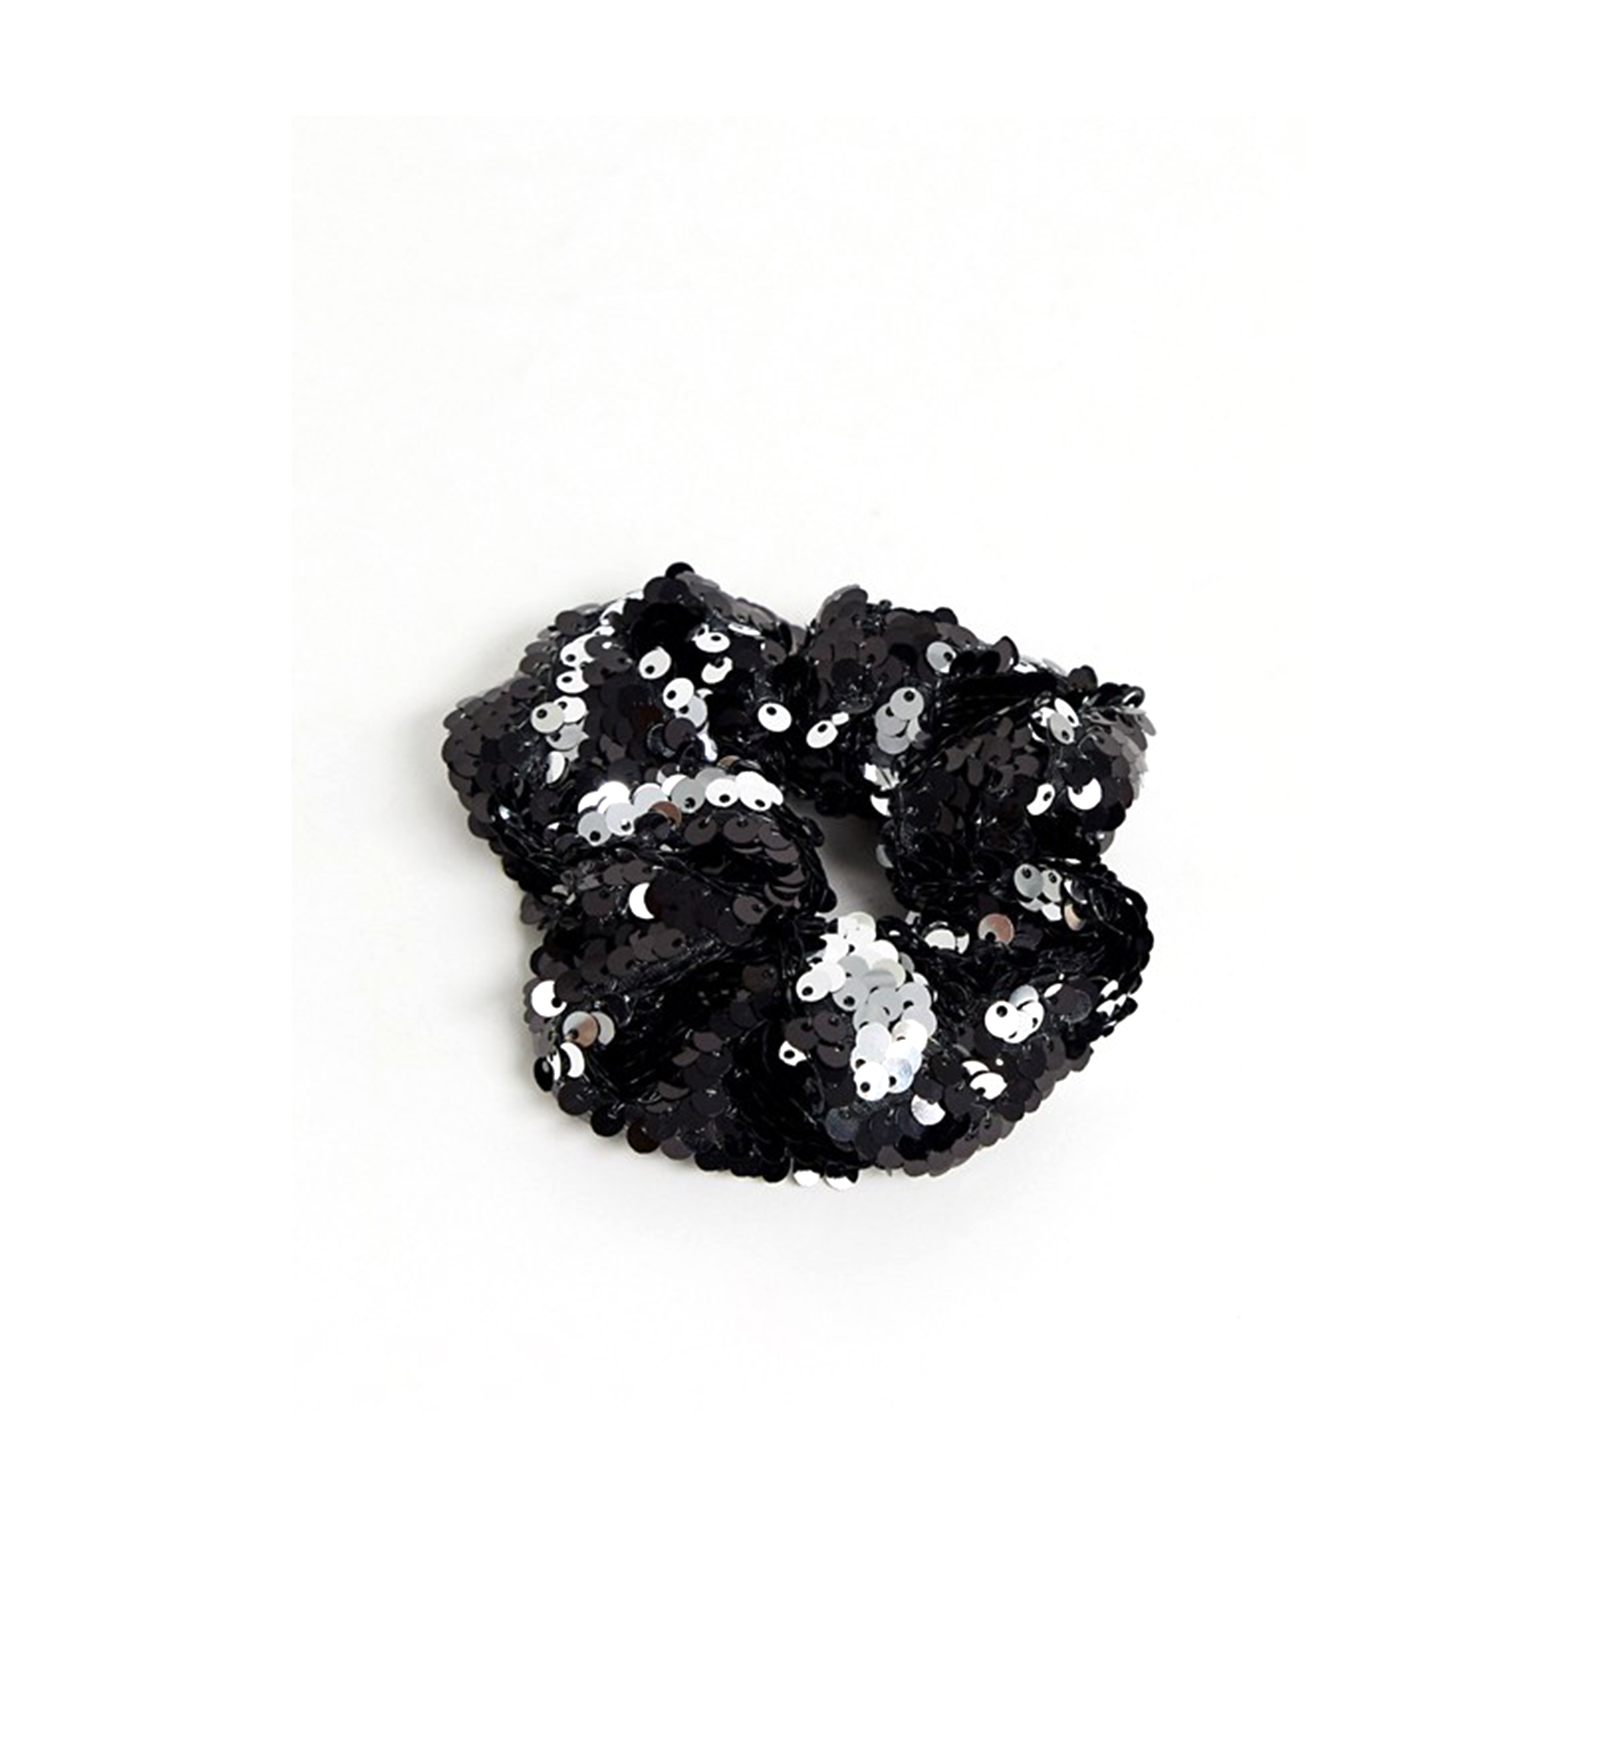 JF19_INT13_Artikel_Image_Hairstyle_Scrunchie_Revival_1600×1749_02.png